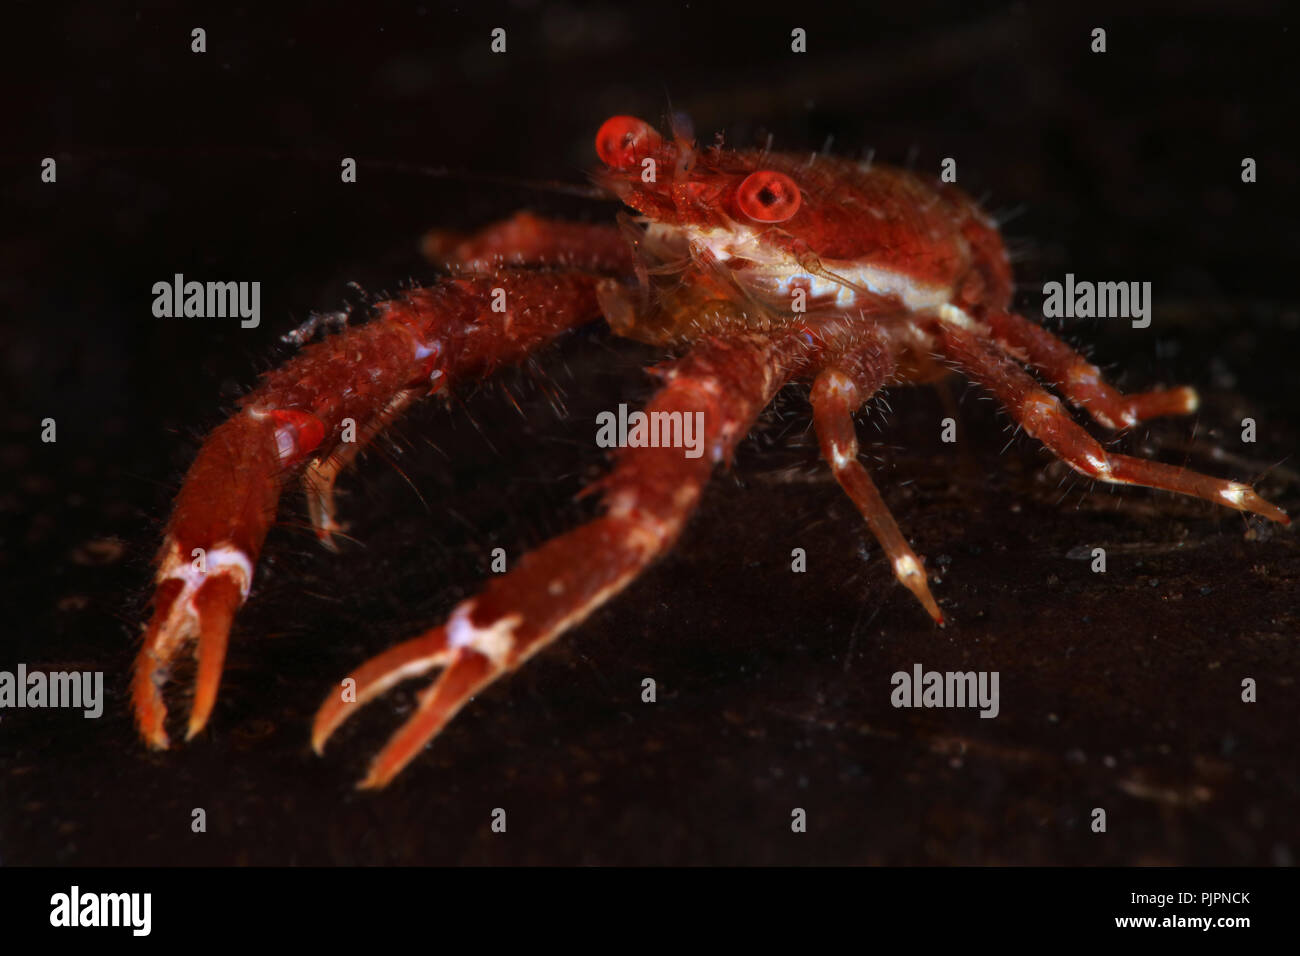 Squat lobster (Galathea balssi). Picture was taken in Lembeh strait, Indonesia - Stock Image